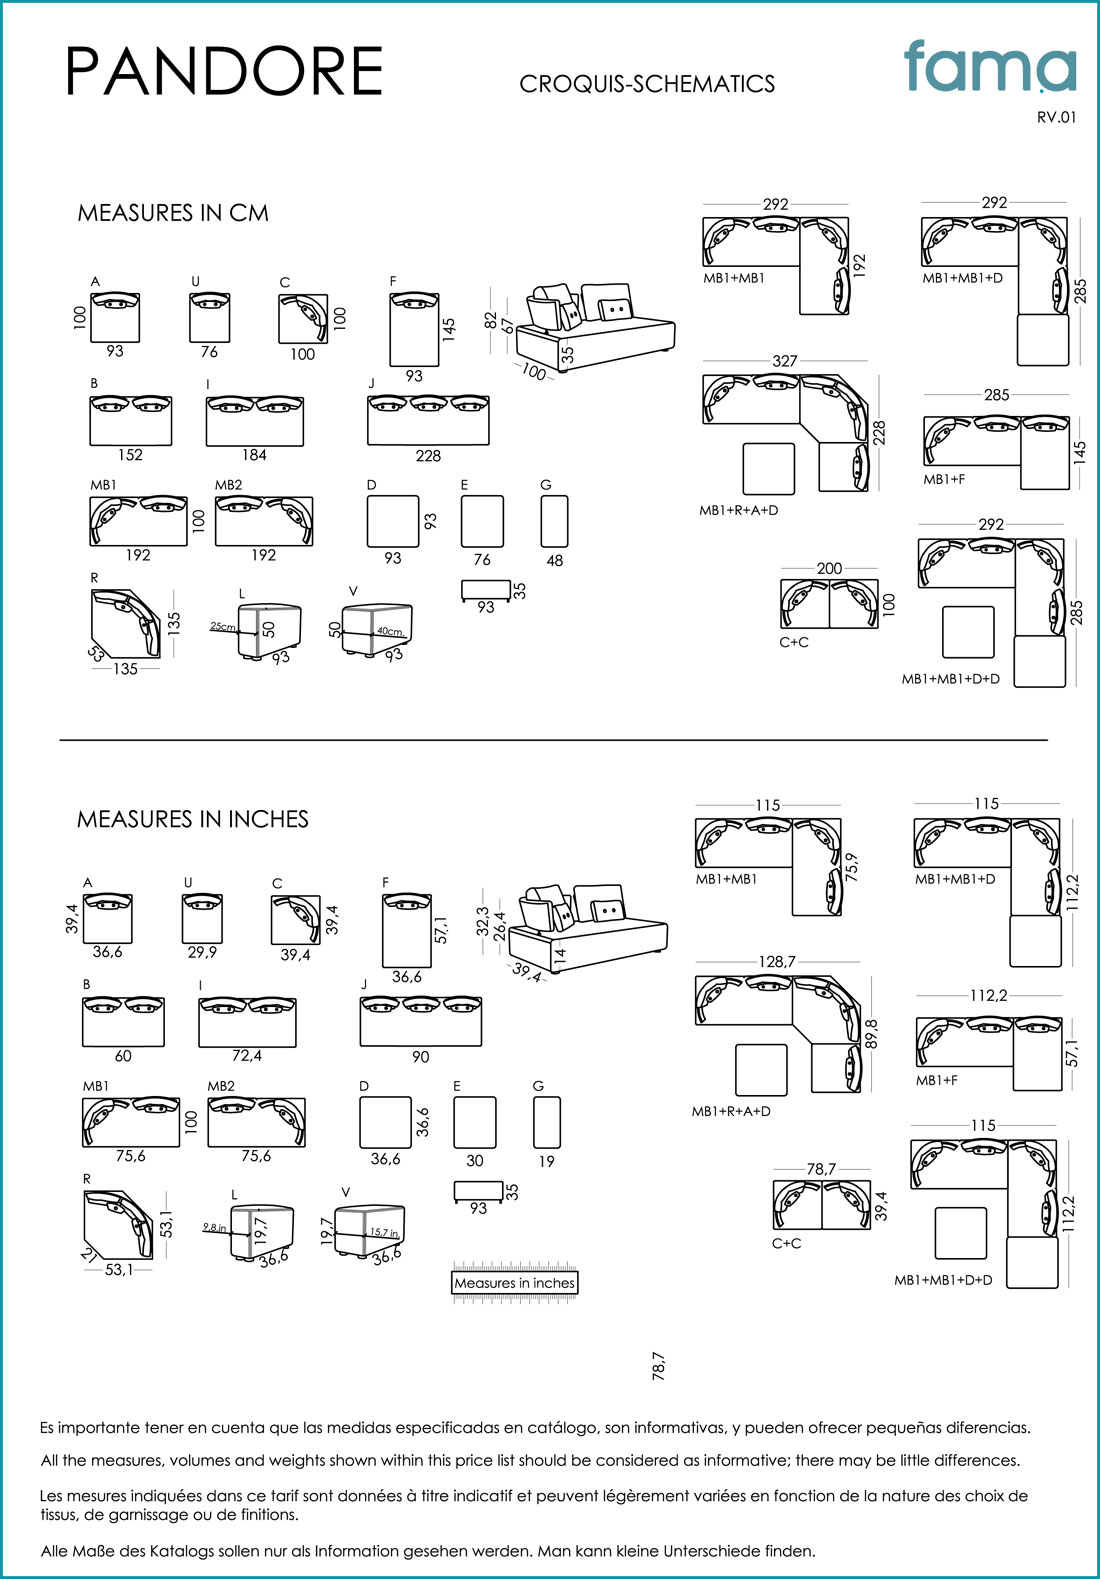 sectionnel-funky-mobilier-moderne-famaliving-montreal-pandore-specifications